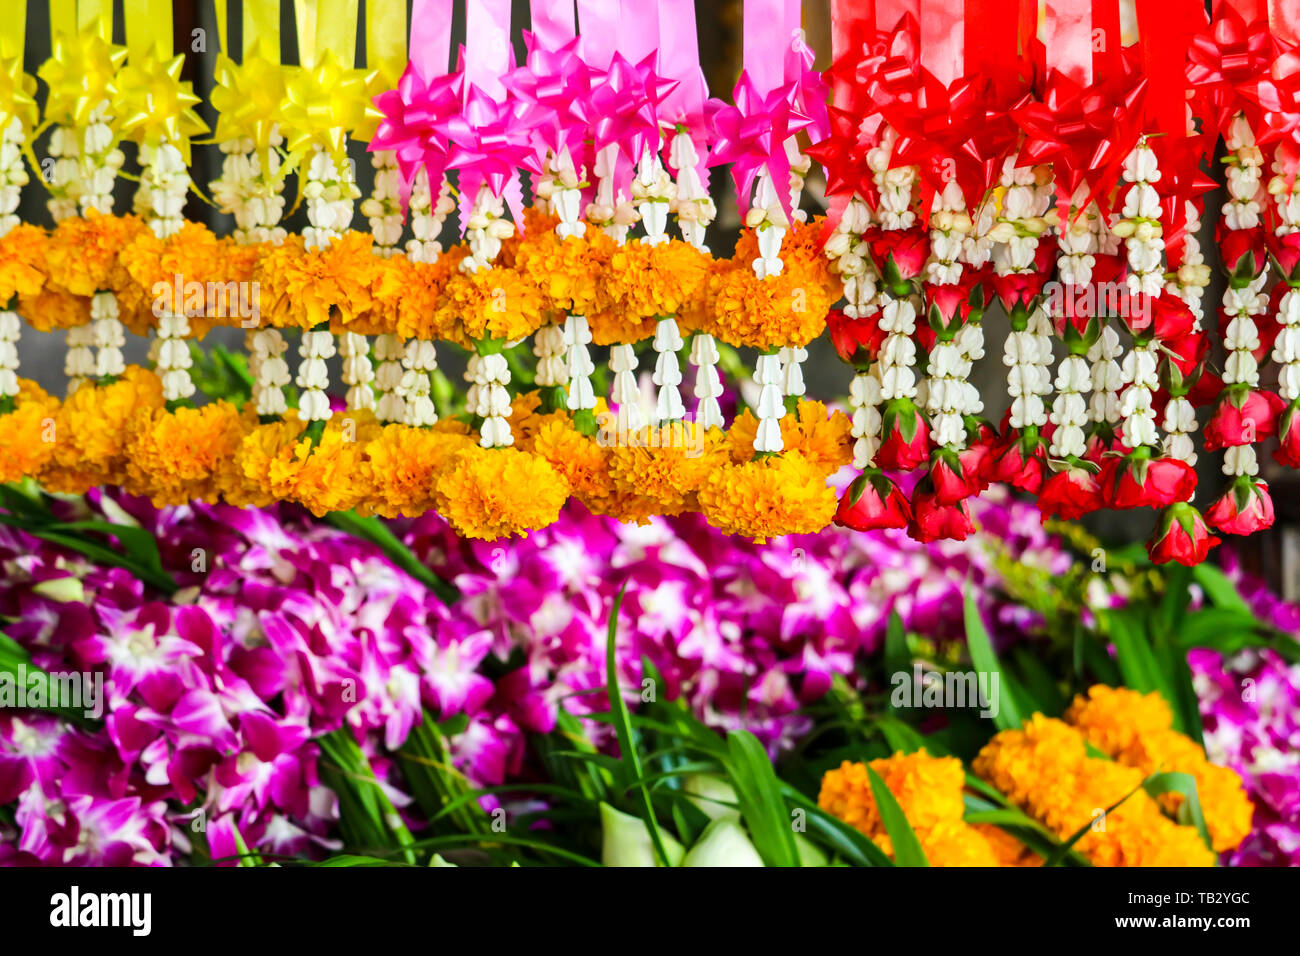 Fresh flower garland Used to worship the sacred things in Buddhism, There are general sales along the road side - Stock Image